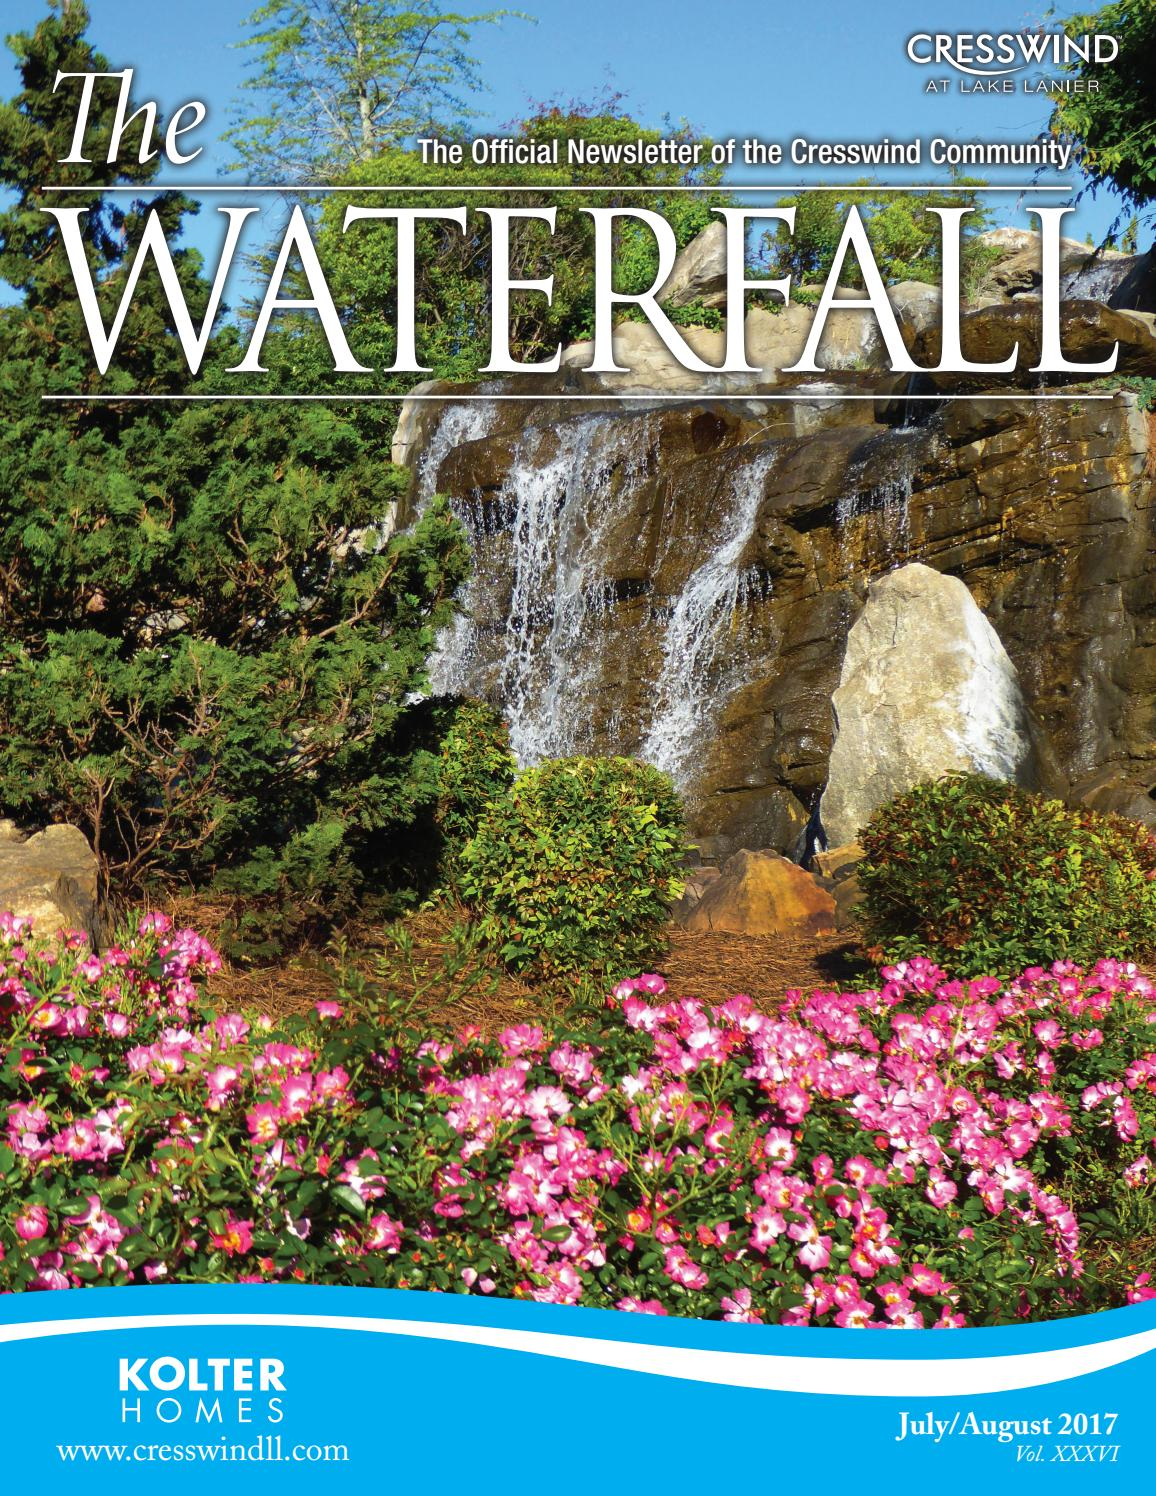 Cresswind Waterfall July/August 2017 by The Times - issuu